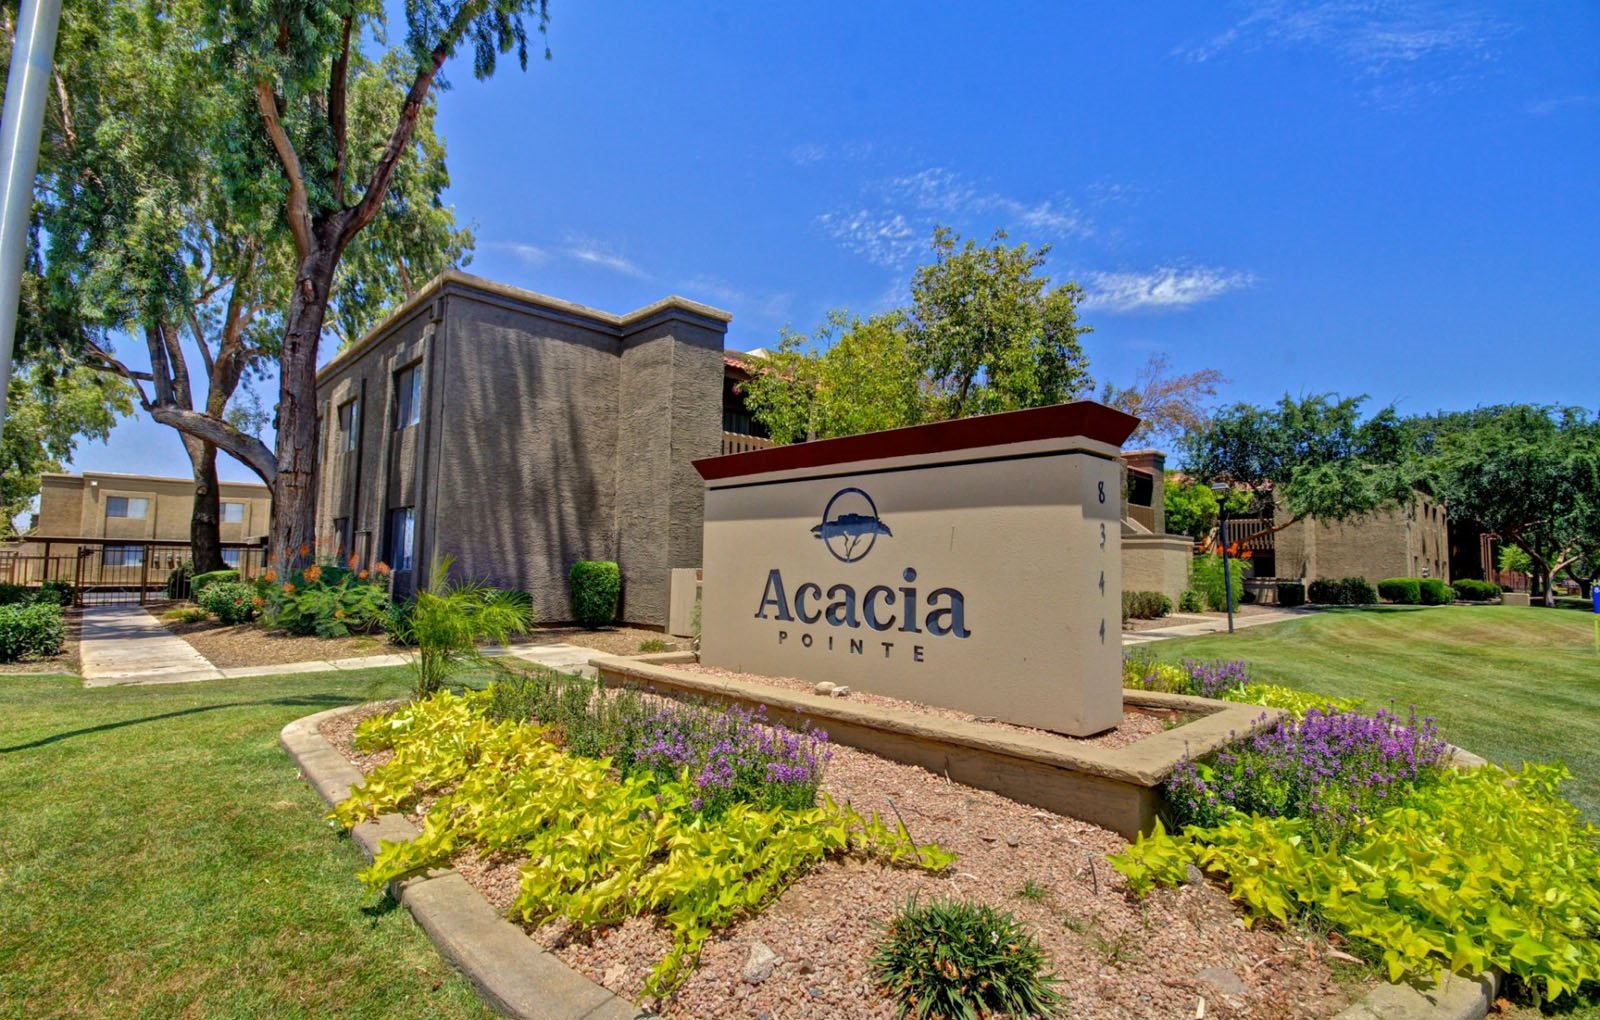 Acacia pointe apartments in glendale az signage